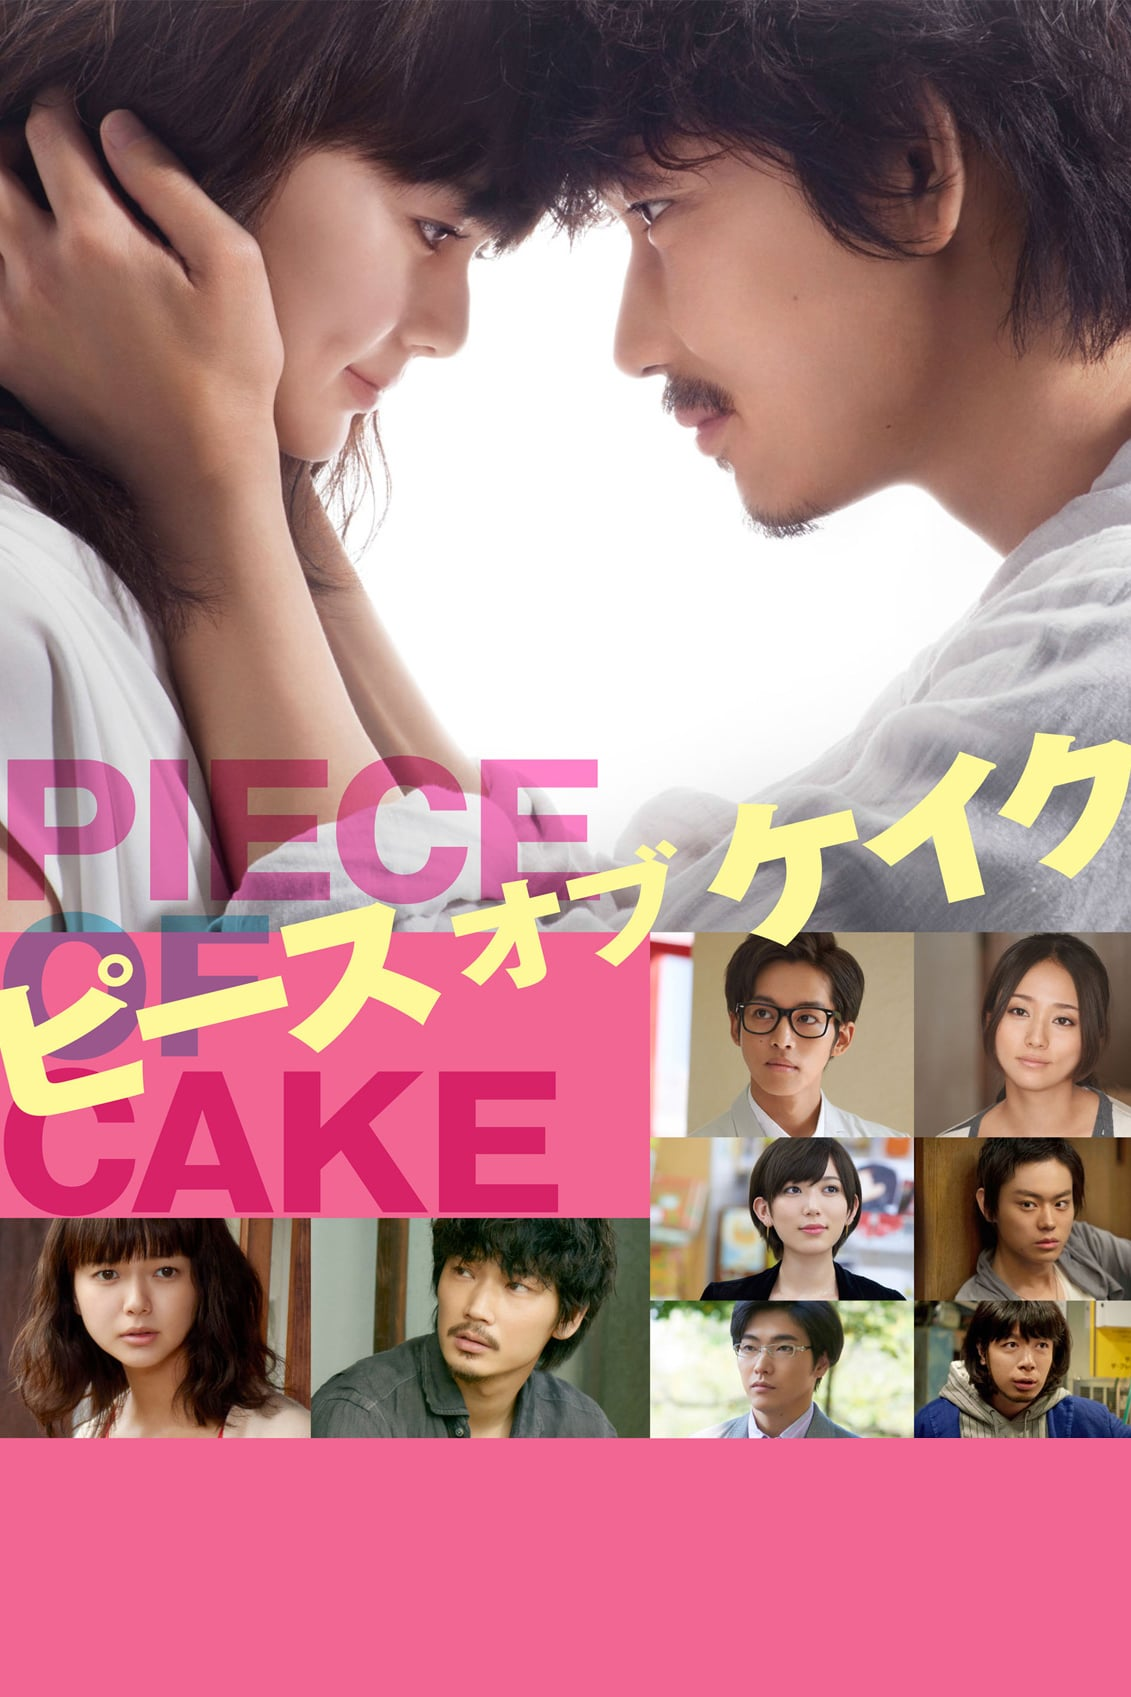 Piece of Cake Movie Streaming Online Watch on Tubi